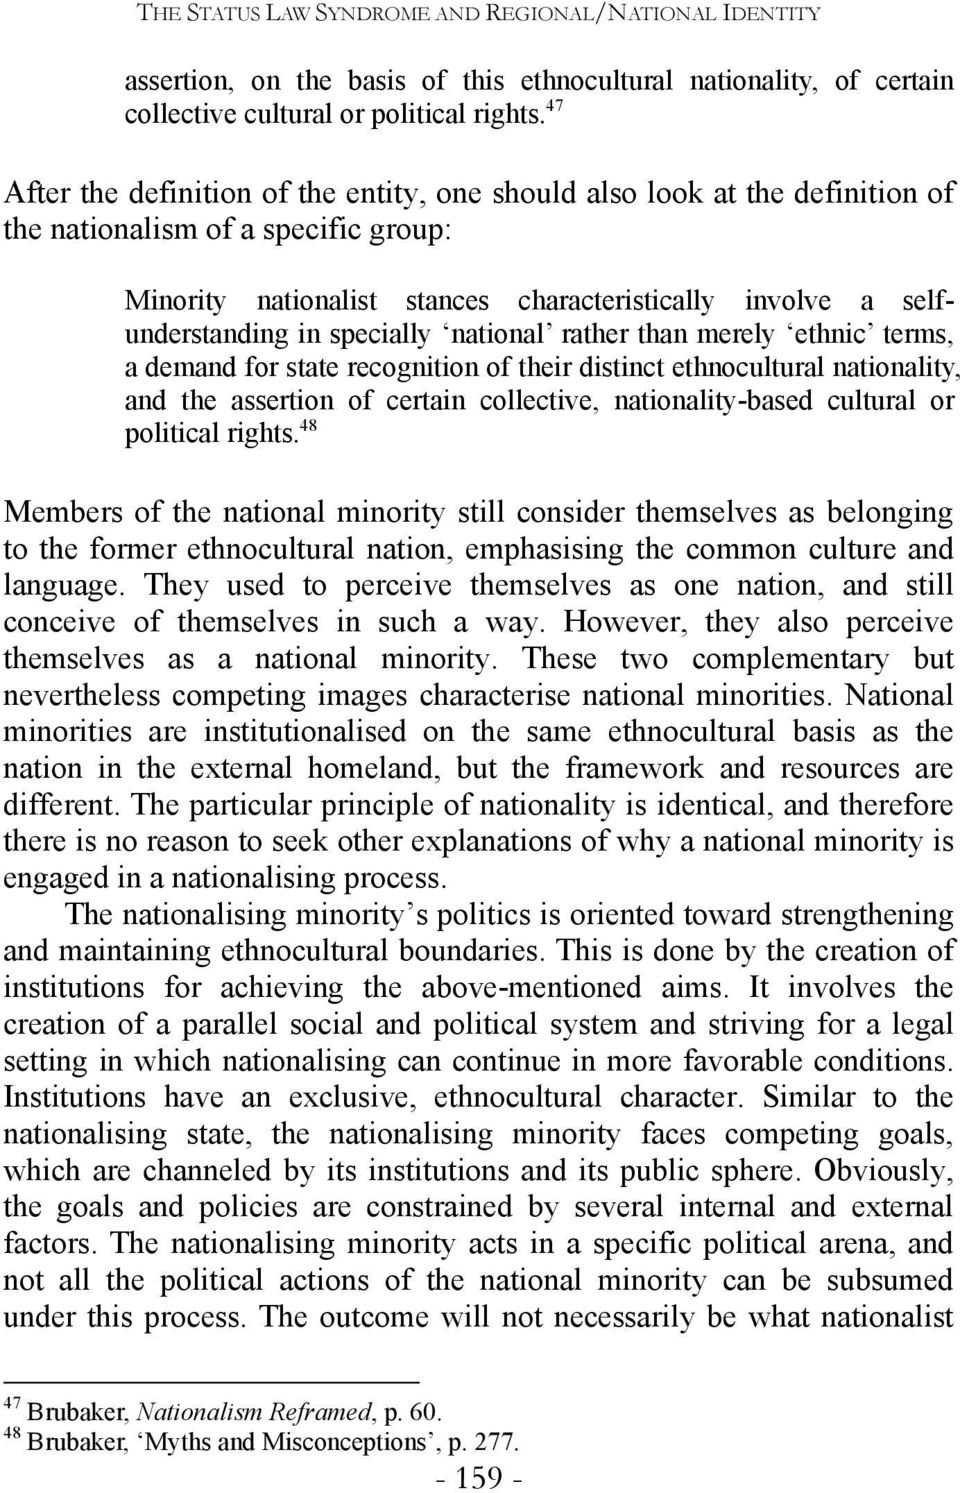 specially national rather than merely ethnic terms, a demand for state recognition of their distinct ethnocultural nationality, and the assertion of certain collective, nationality-based cultural or